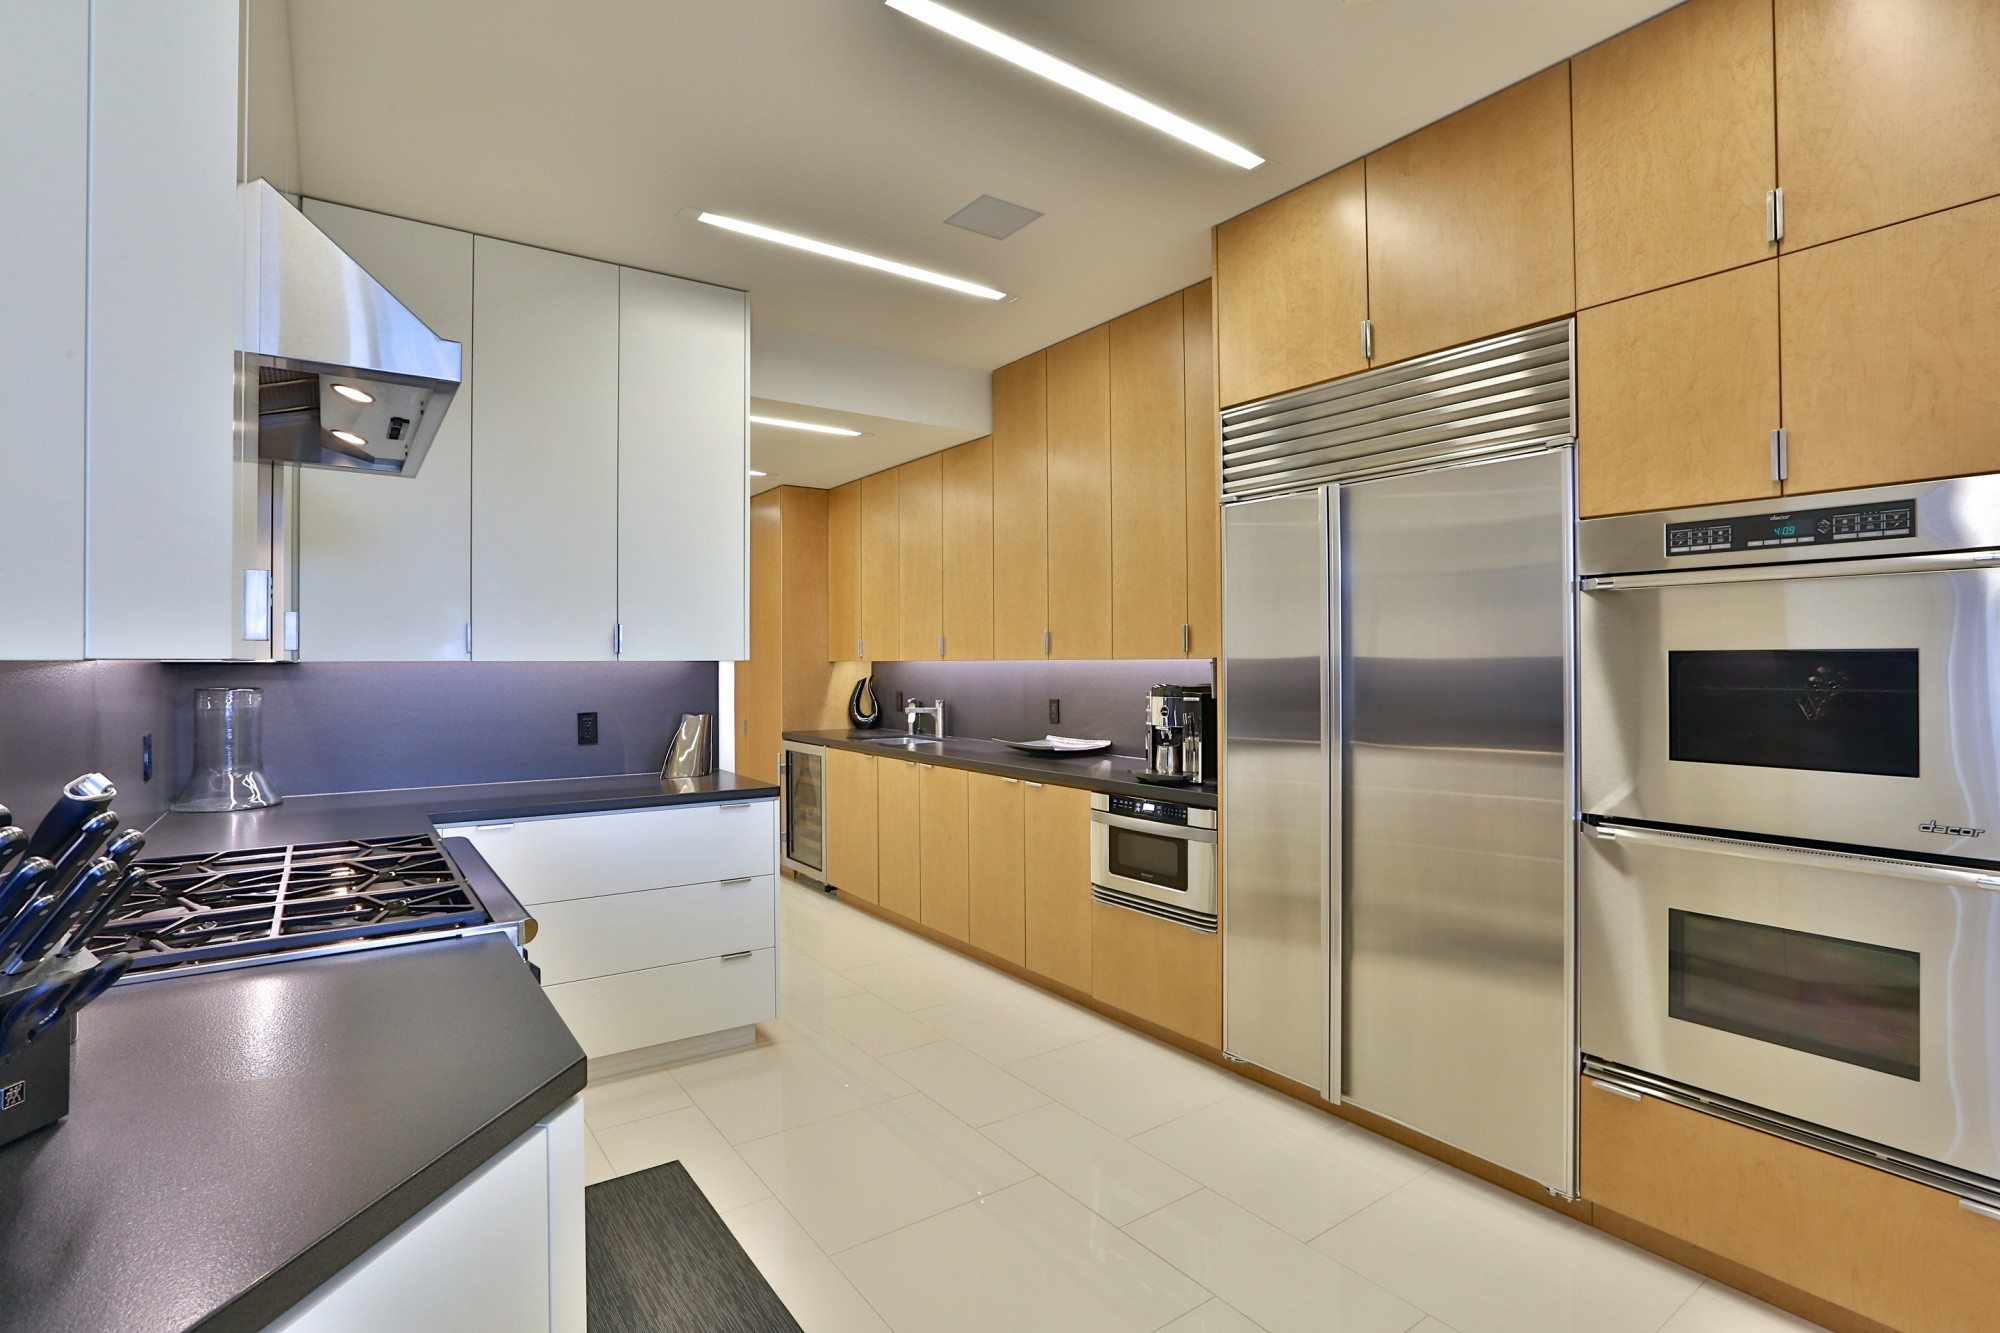 toronto-condo-for-sale-9-jackes-avenue-6